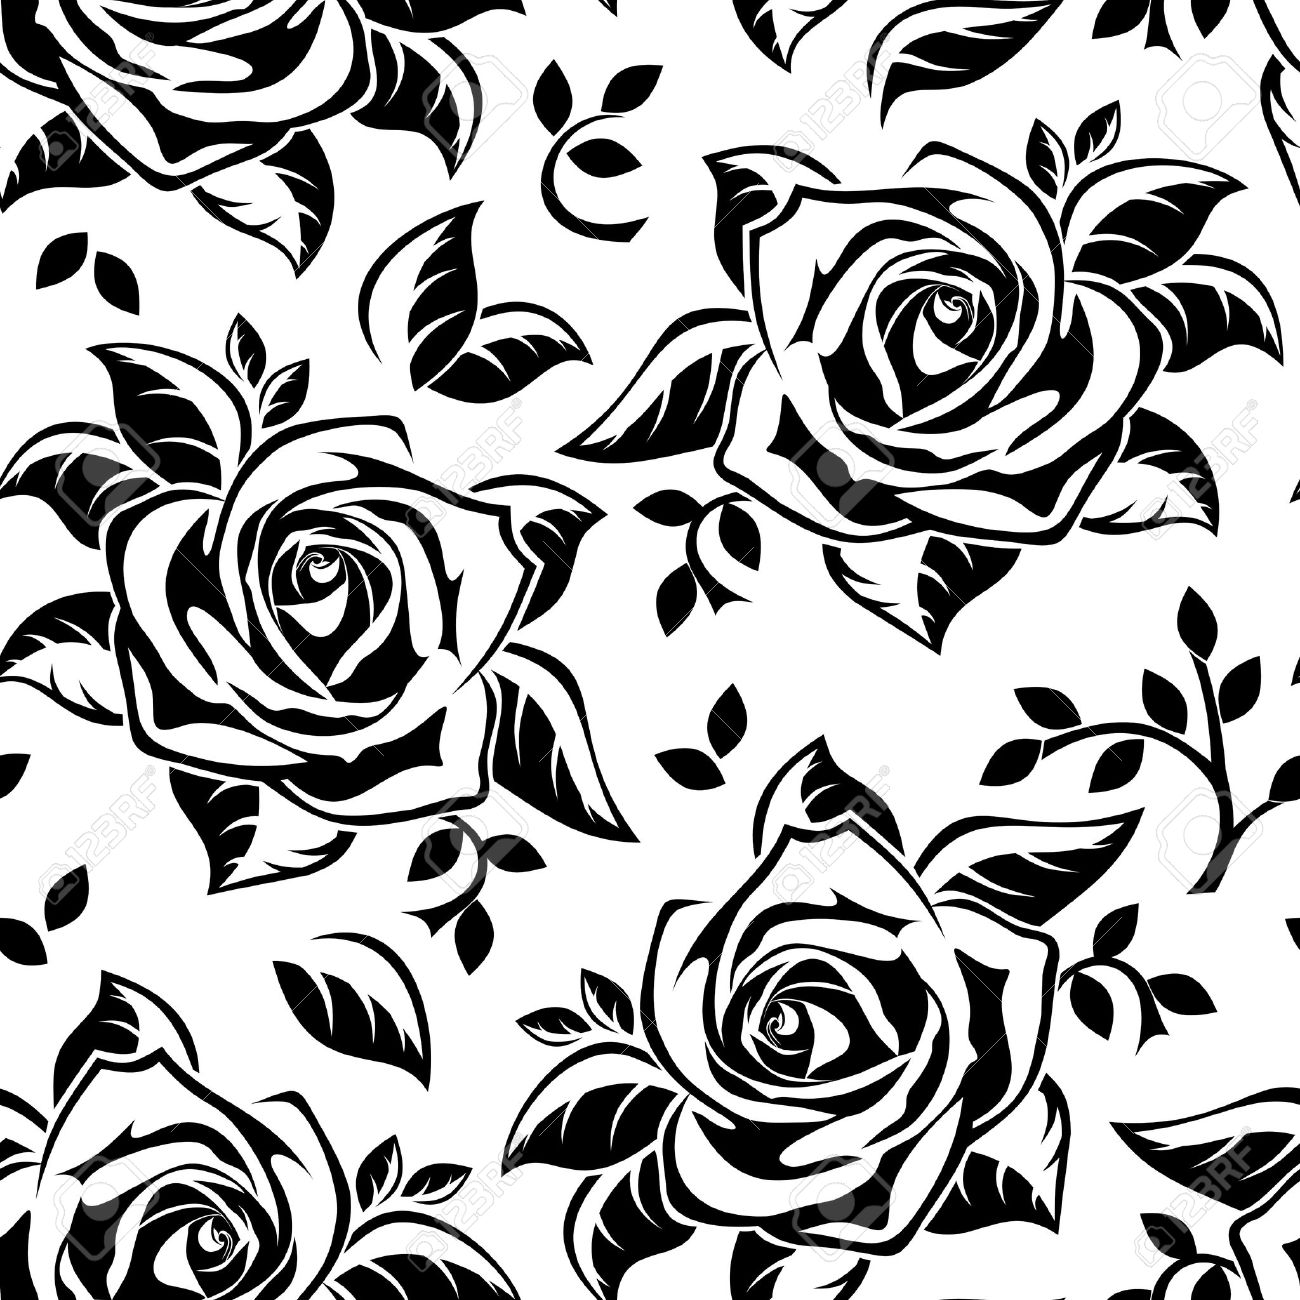 Seamless Pattern With Black Silhouettes Of Roses Illustration